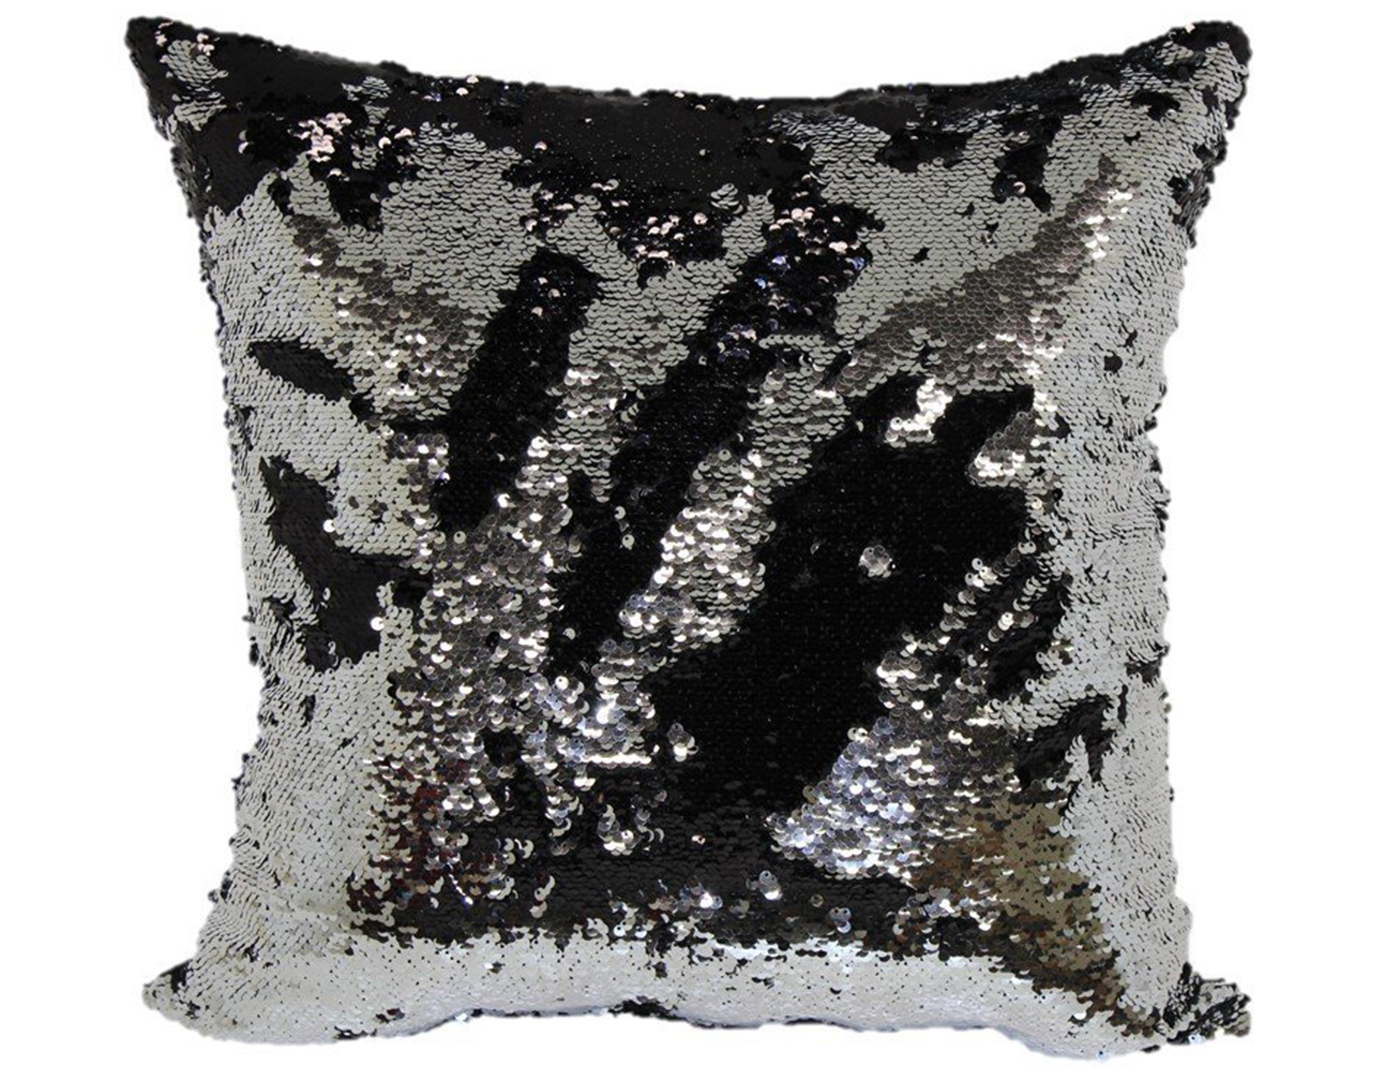 Black and Silver Mermaid Pillow 18""